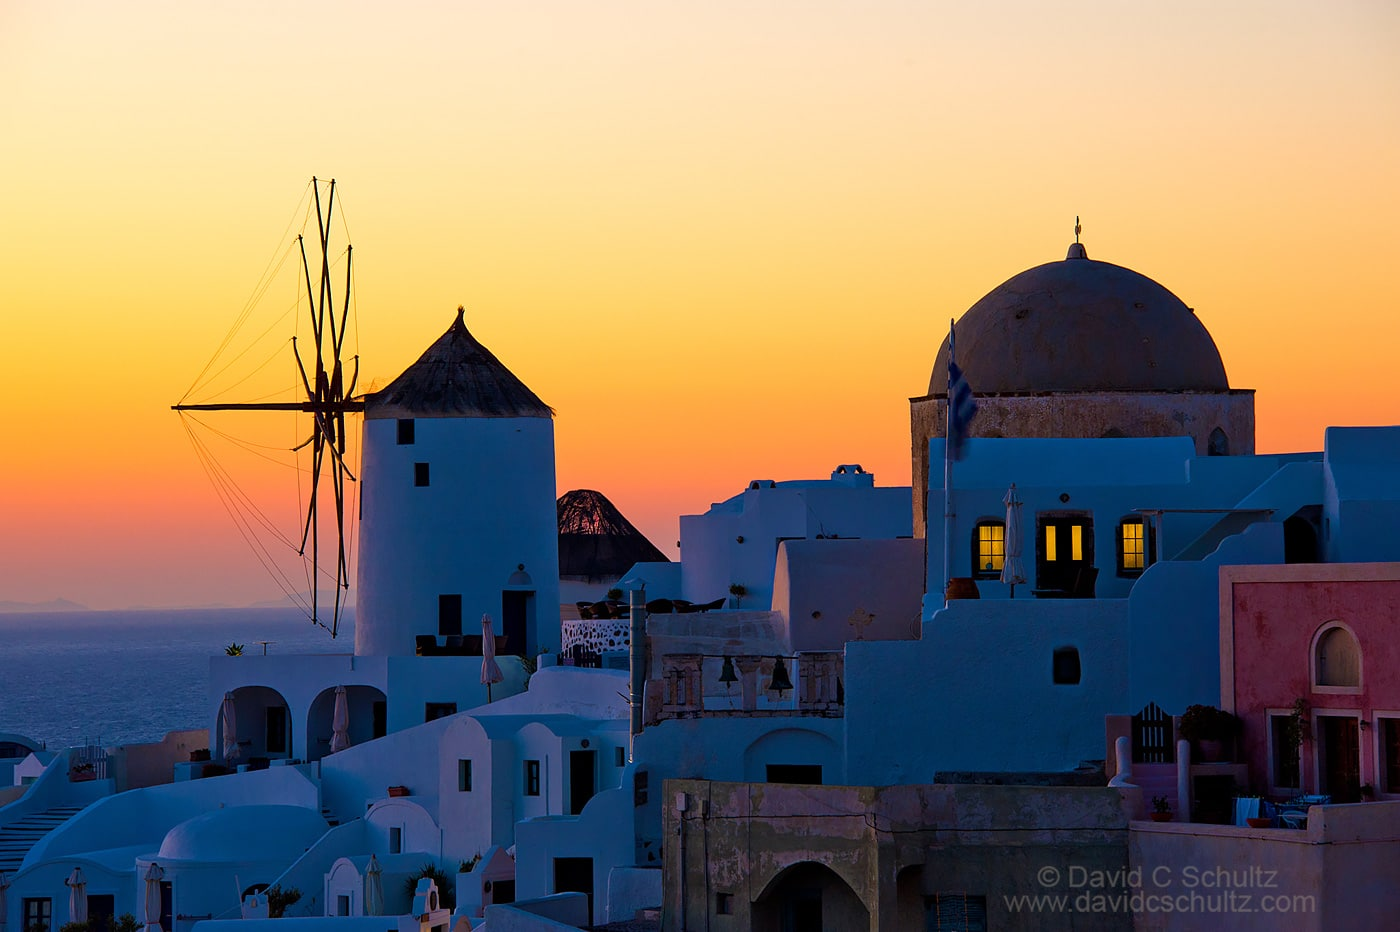 Sunset at Oia, Santorini, Greece - Image #202-631